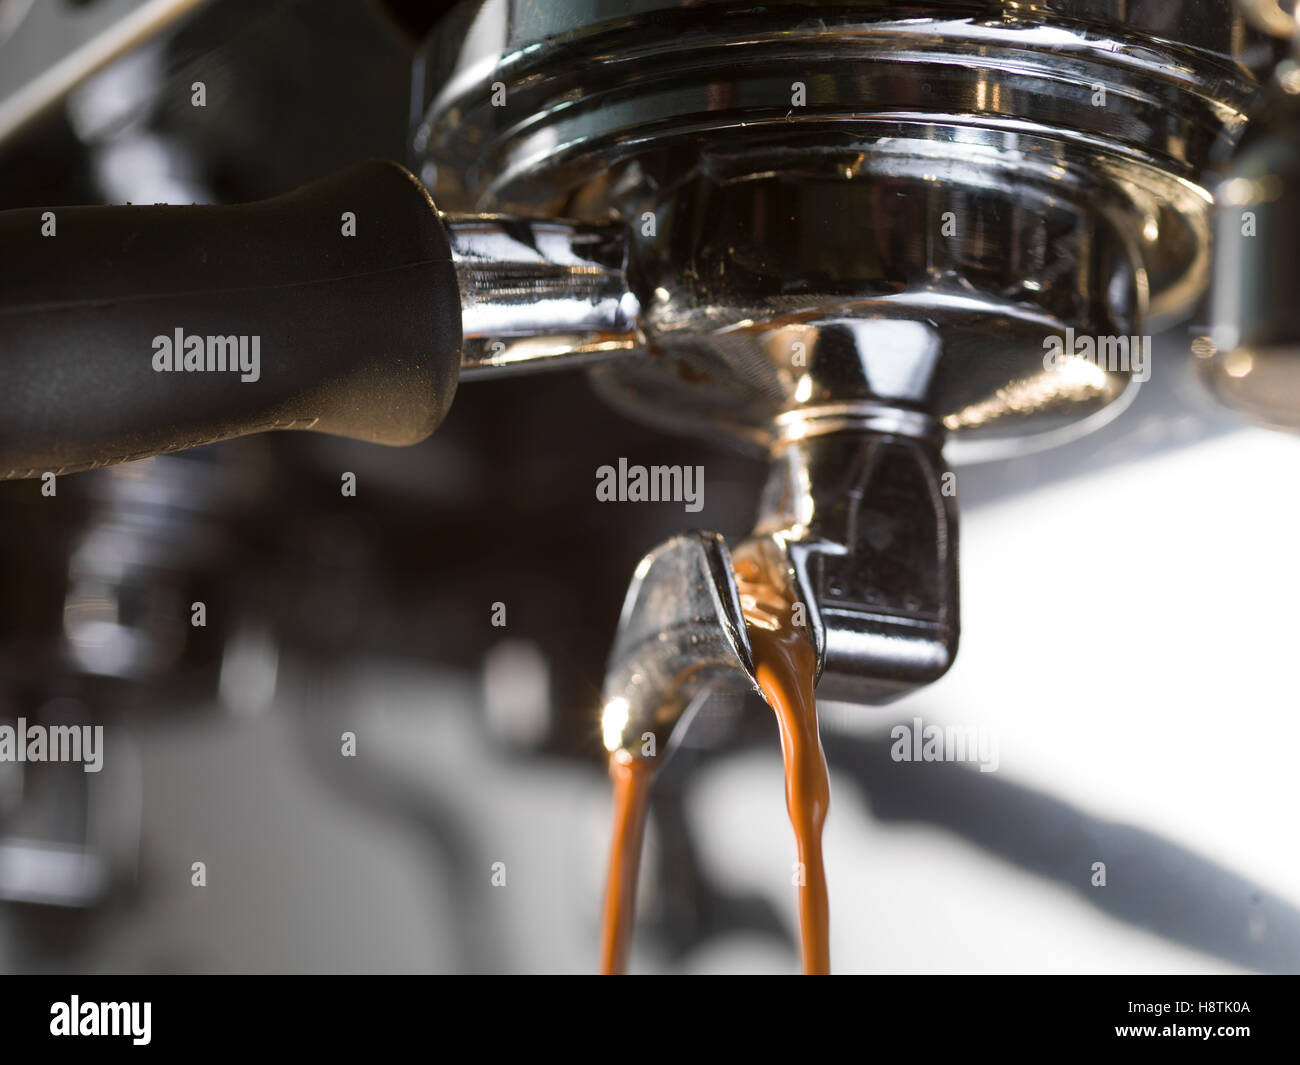 L'extraction de l'espresso avec une machine à café professionelle, Close up Photo Stock